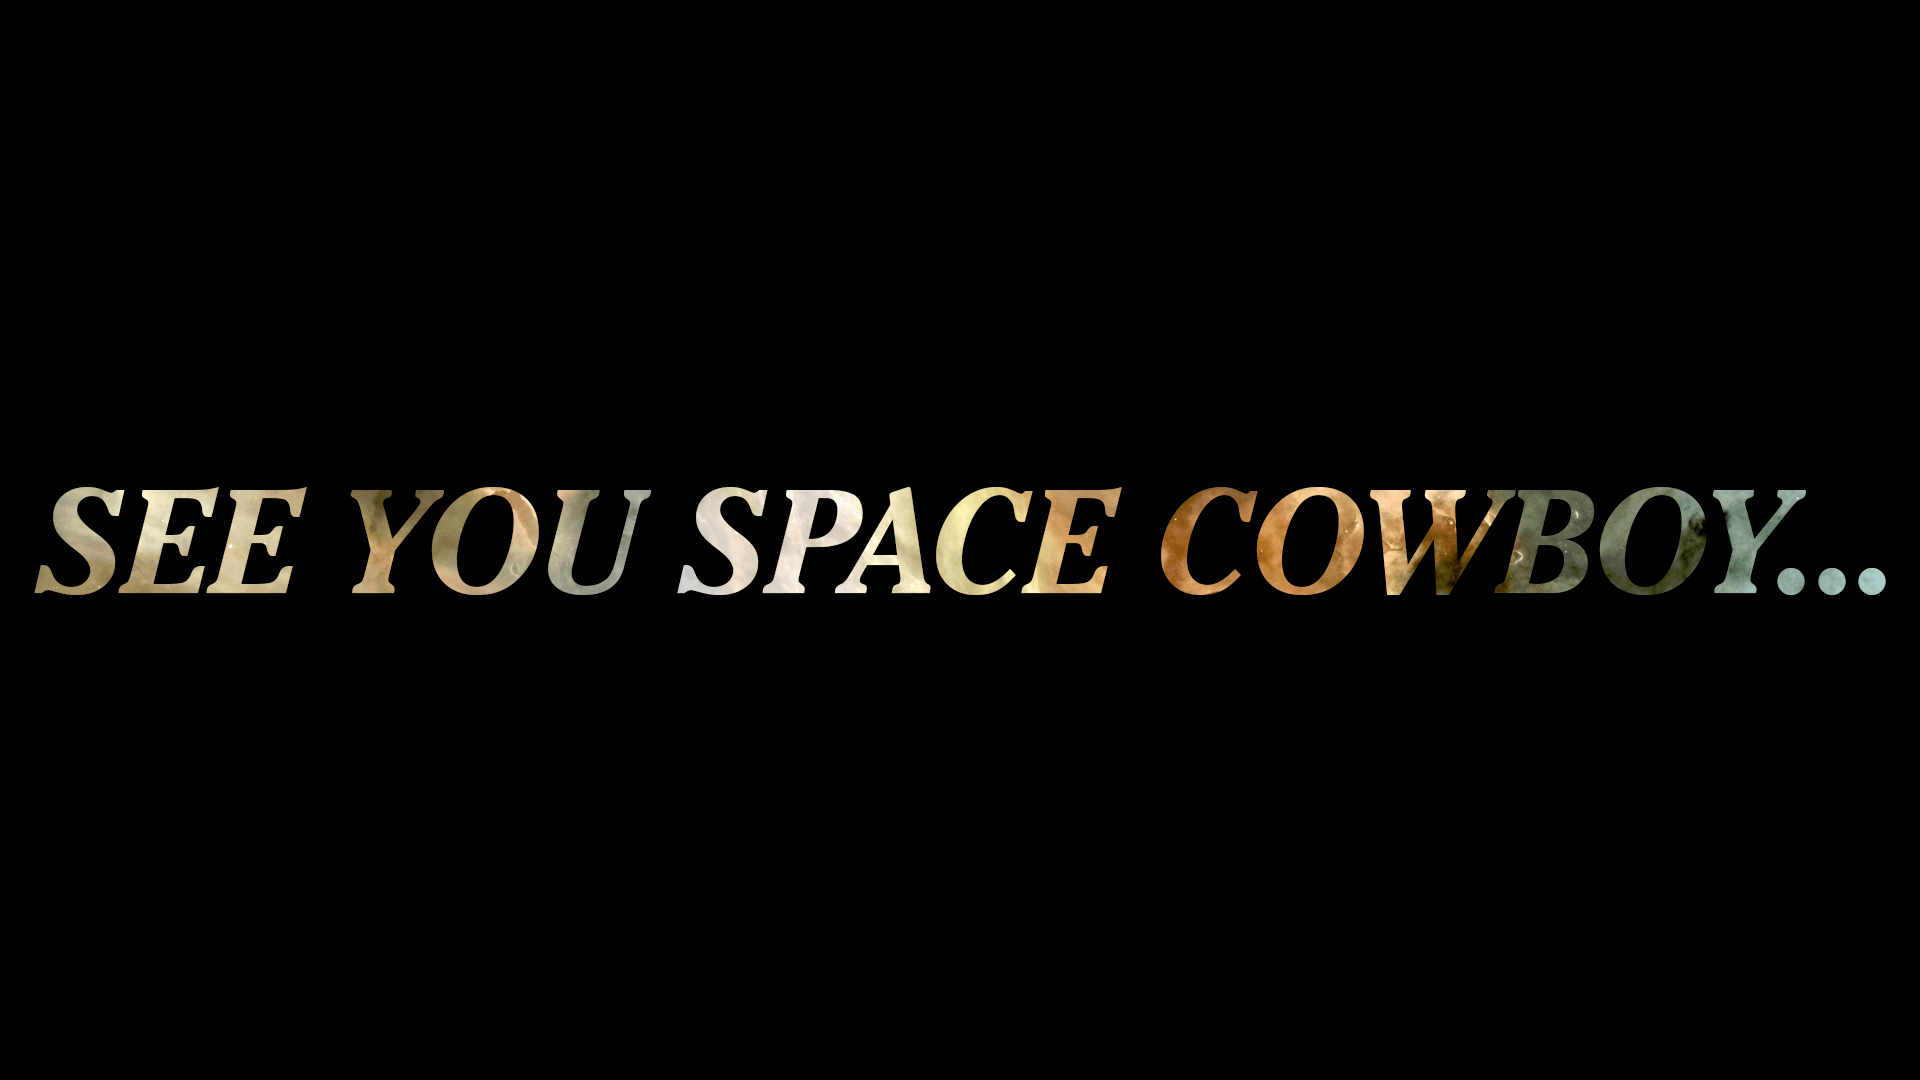 See You Space Cowboy Wallpapers Top Free See You Space Cowboy